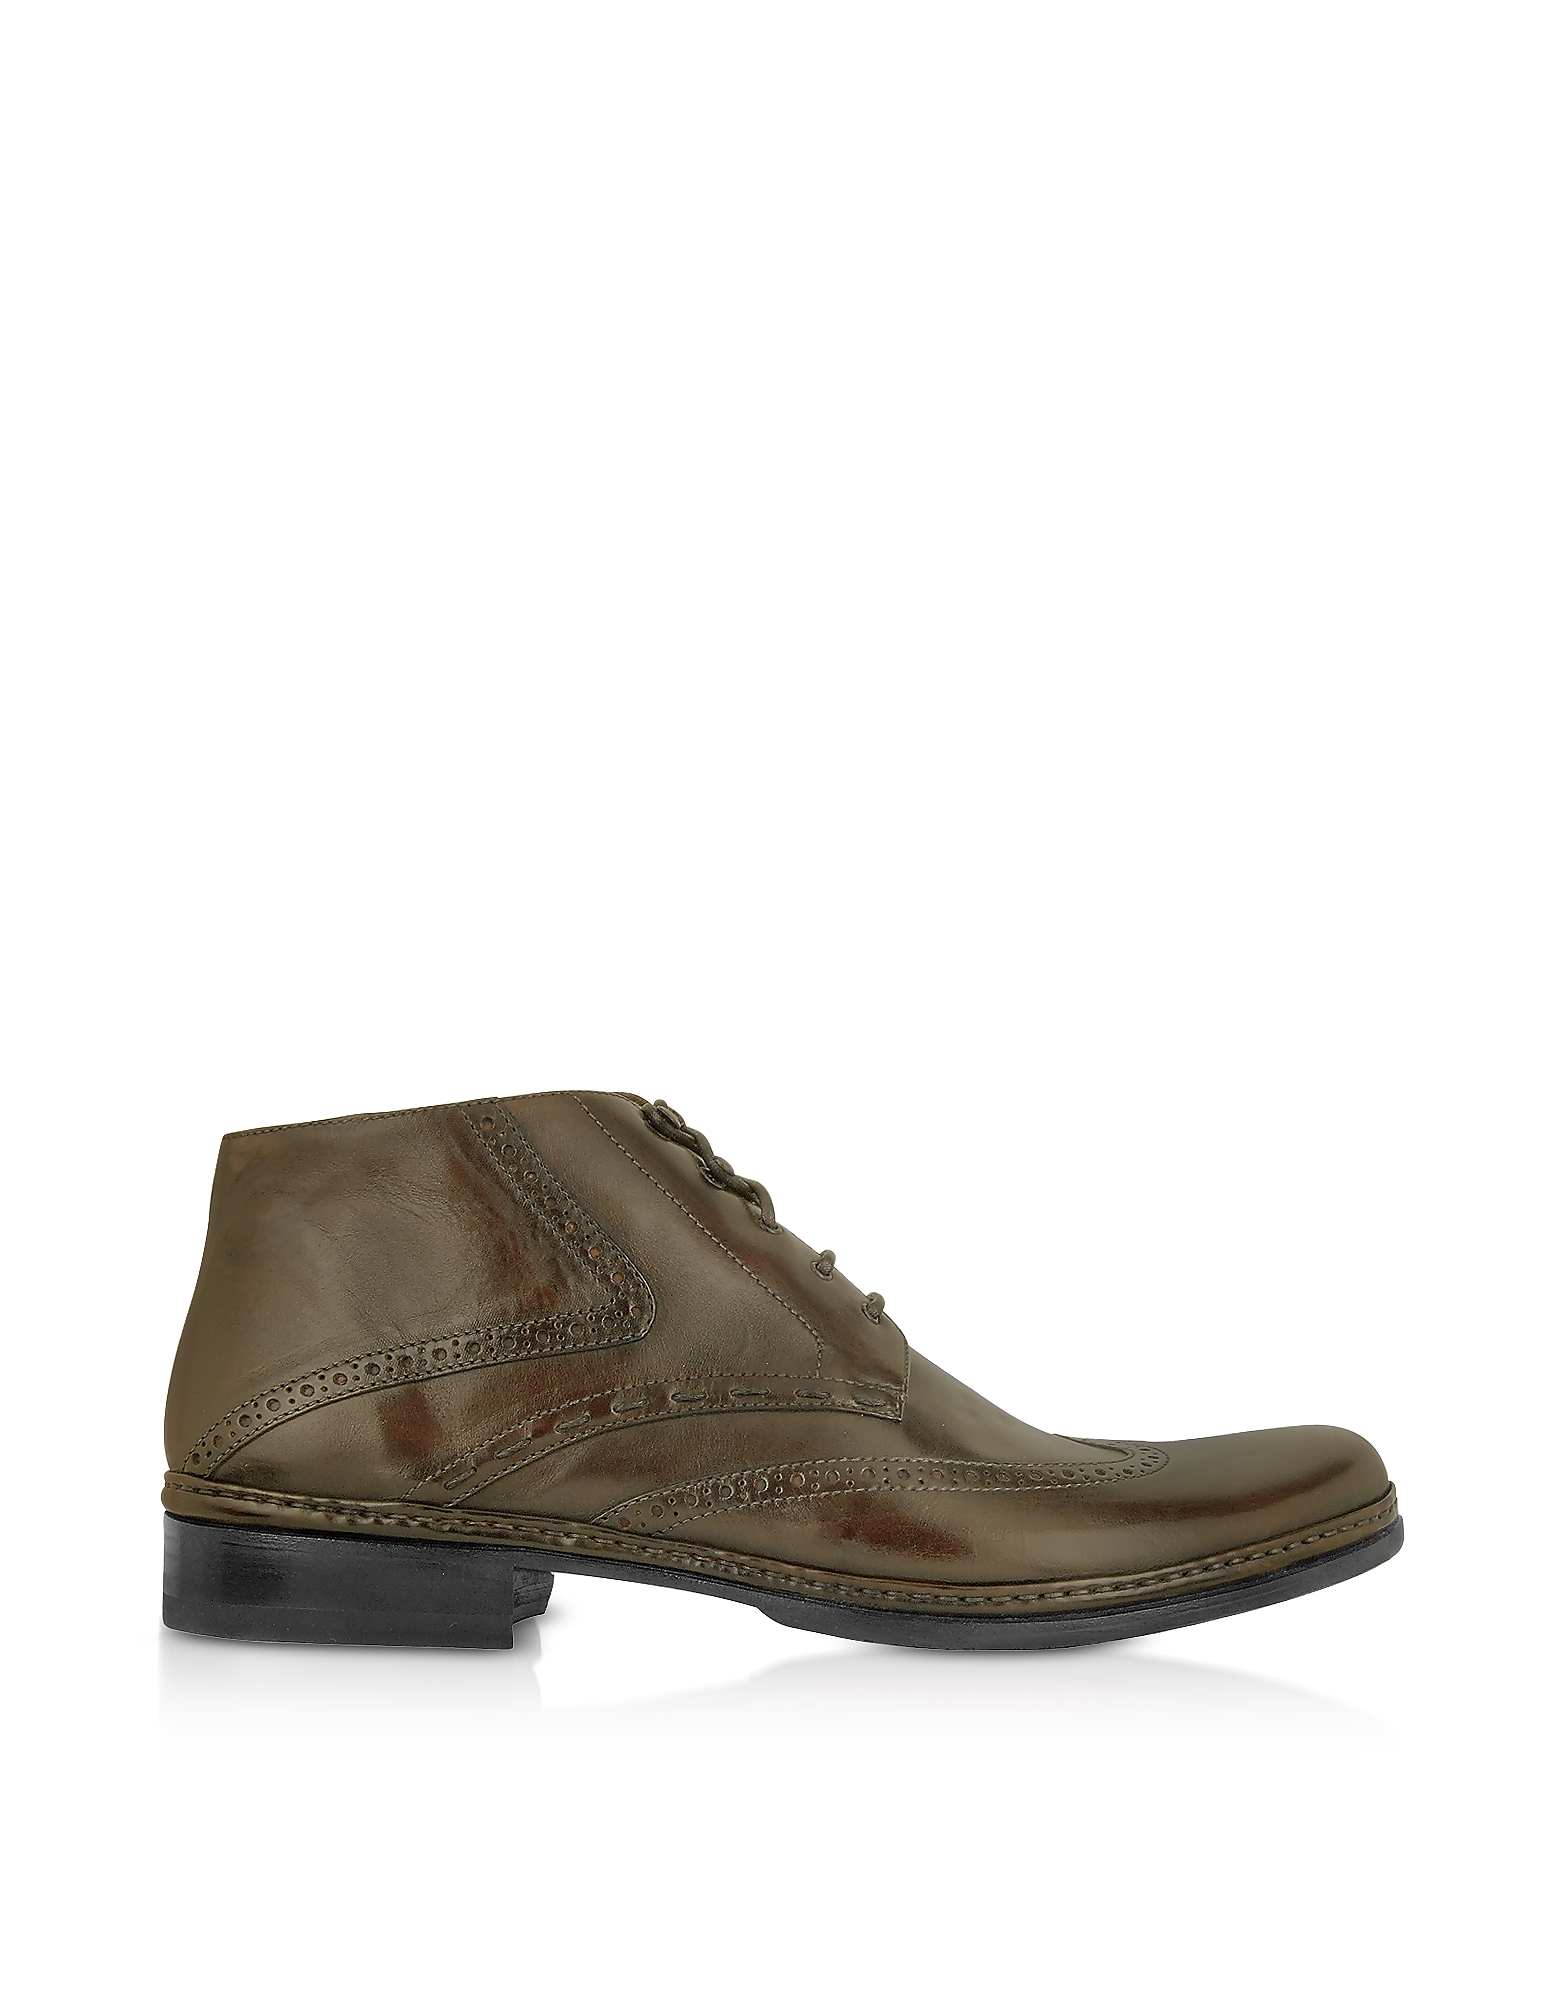 Cocoa Handmade Italian Leather Wingtip Ankle Boots